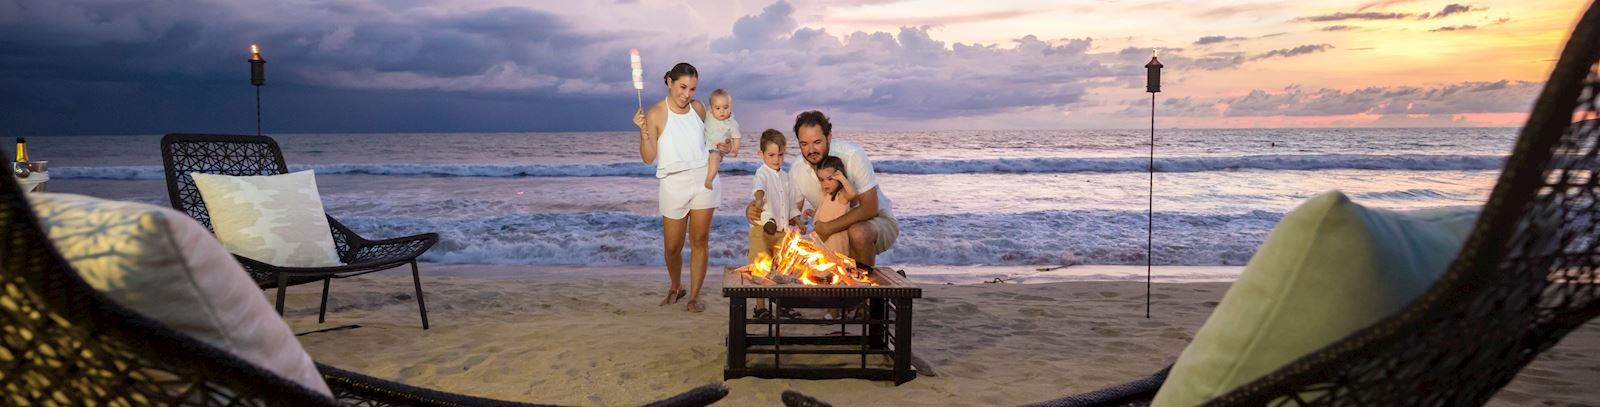 Bonfire by the beach - grand velas riviera nayarit